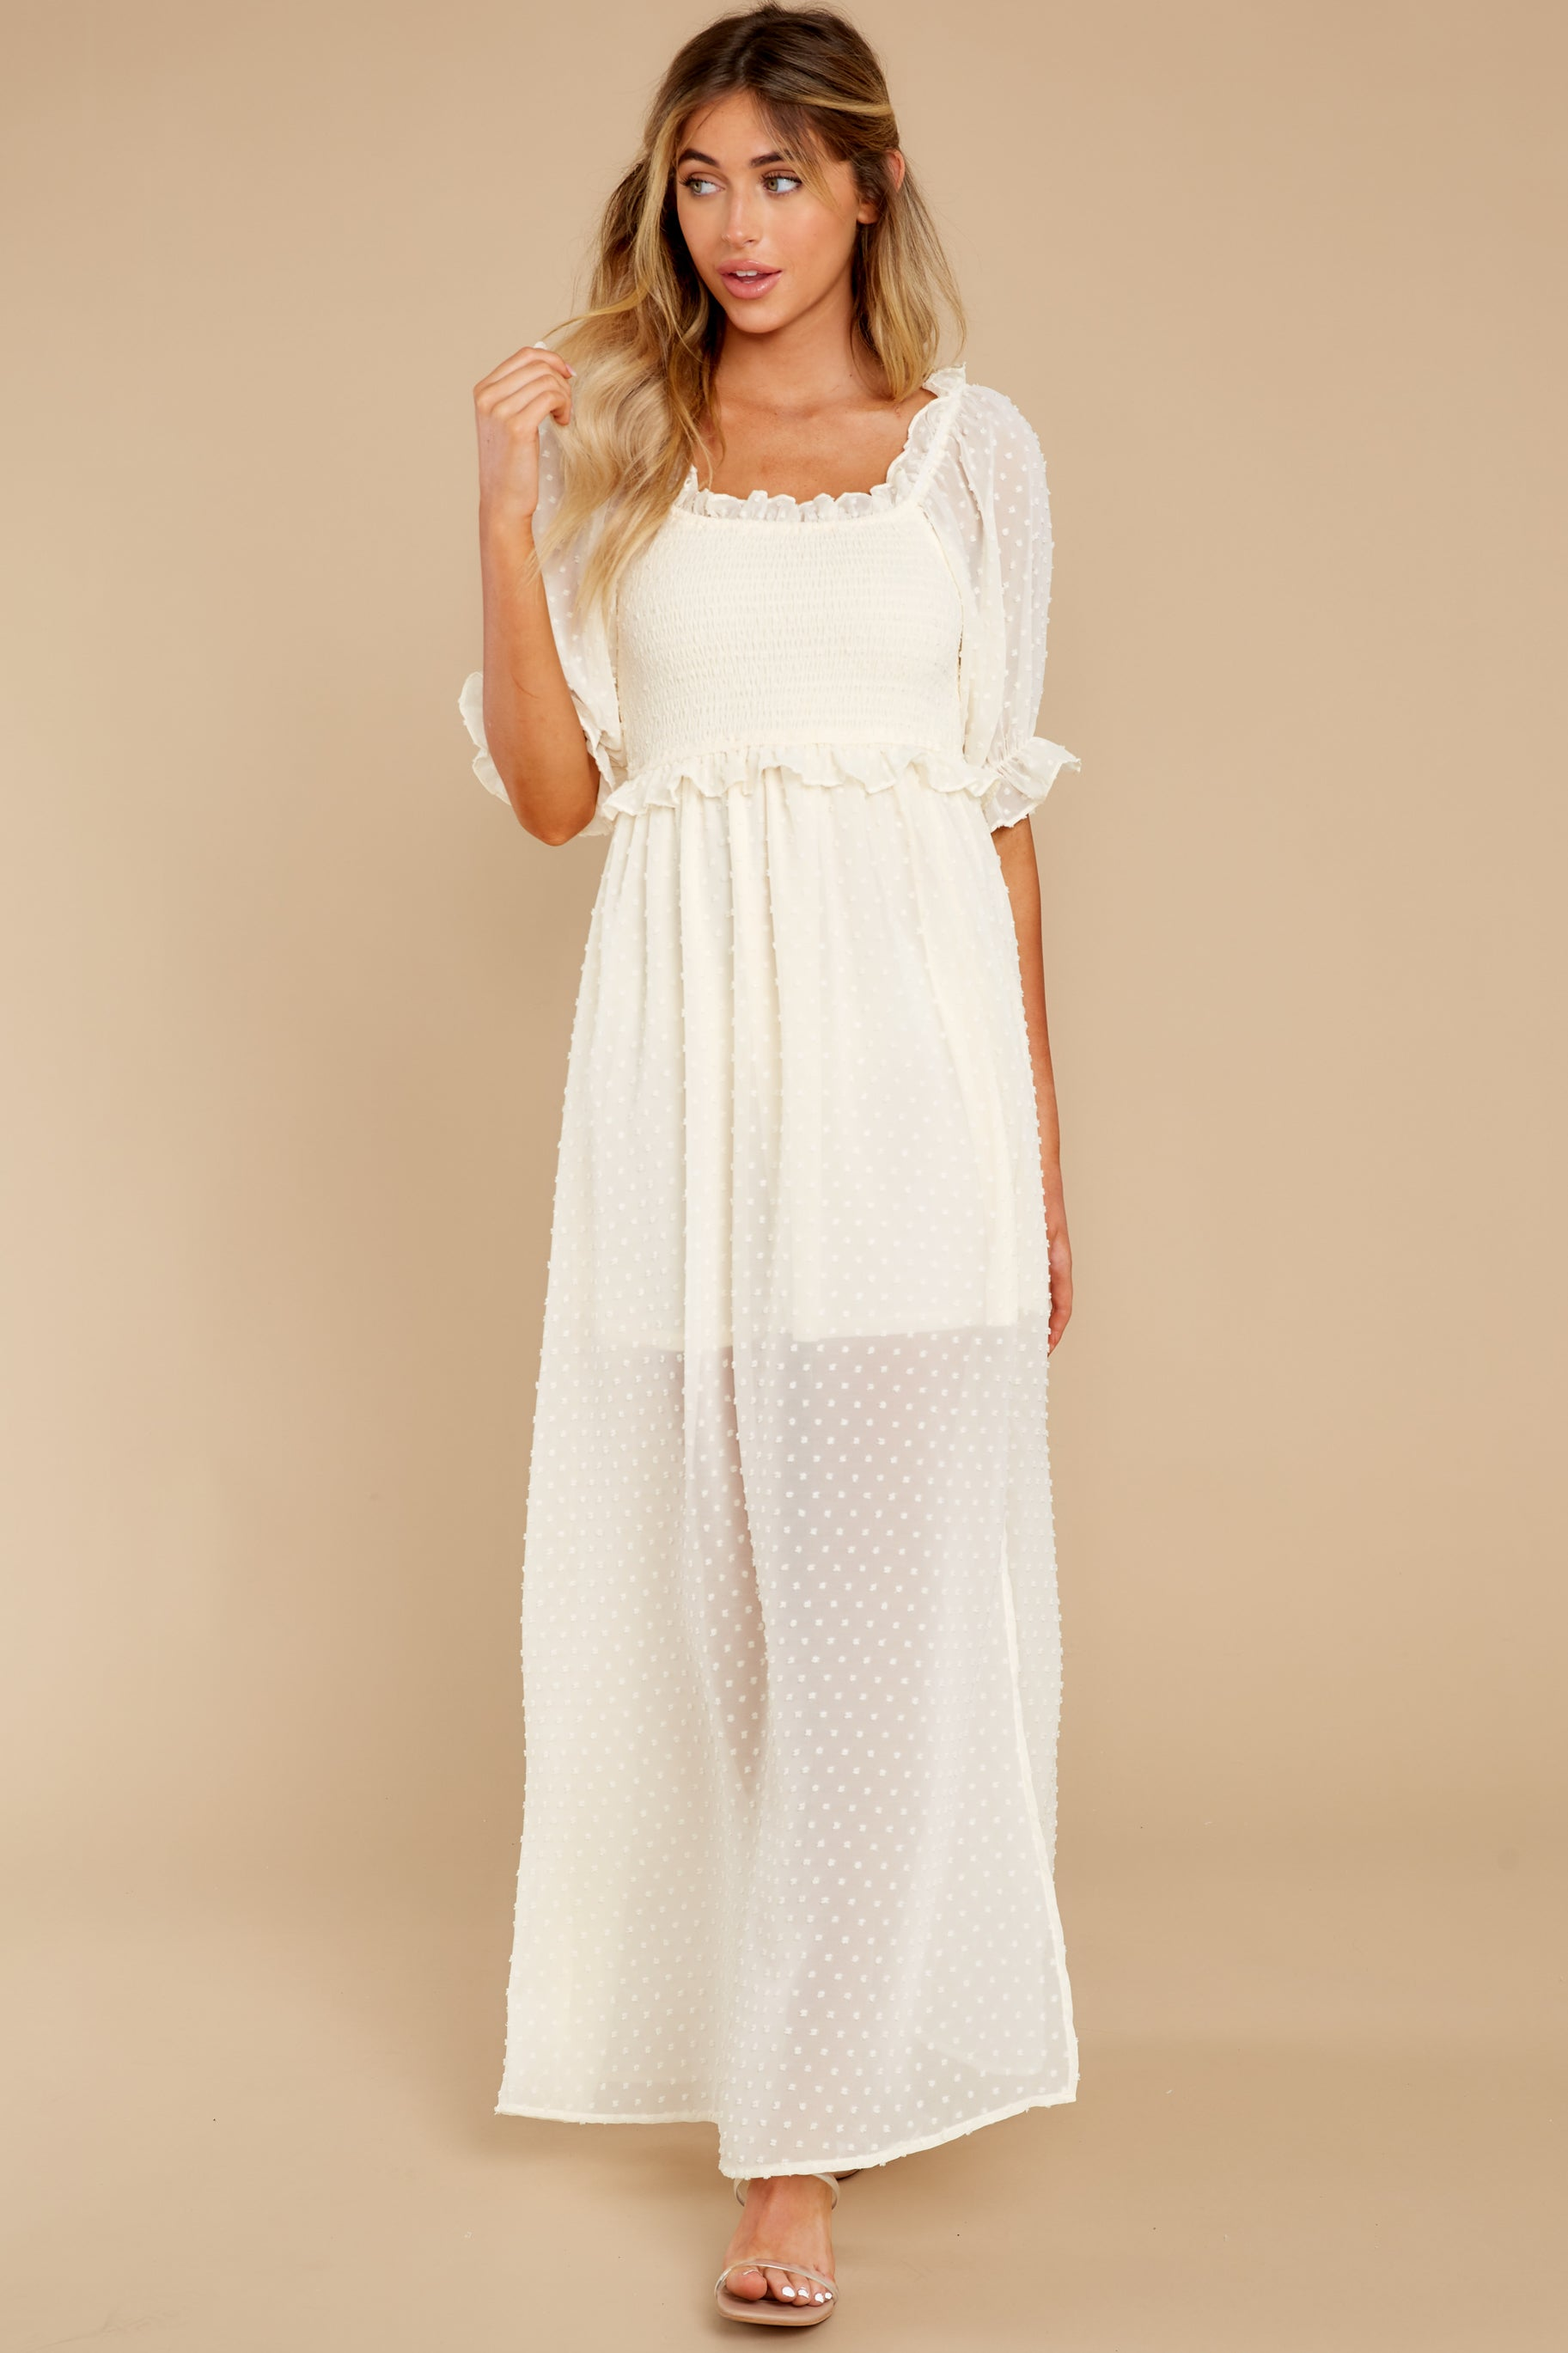 One More Kiss Cream Maxi Dress